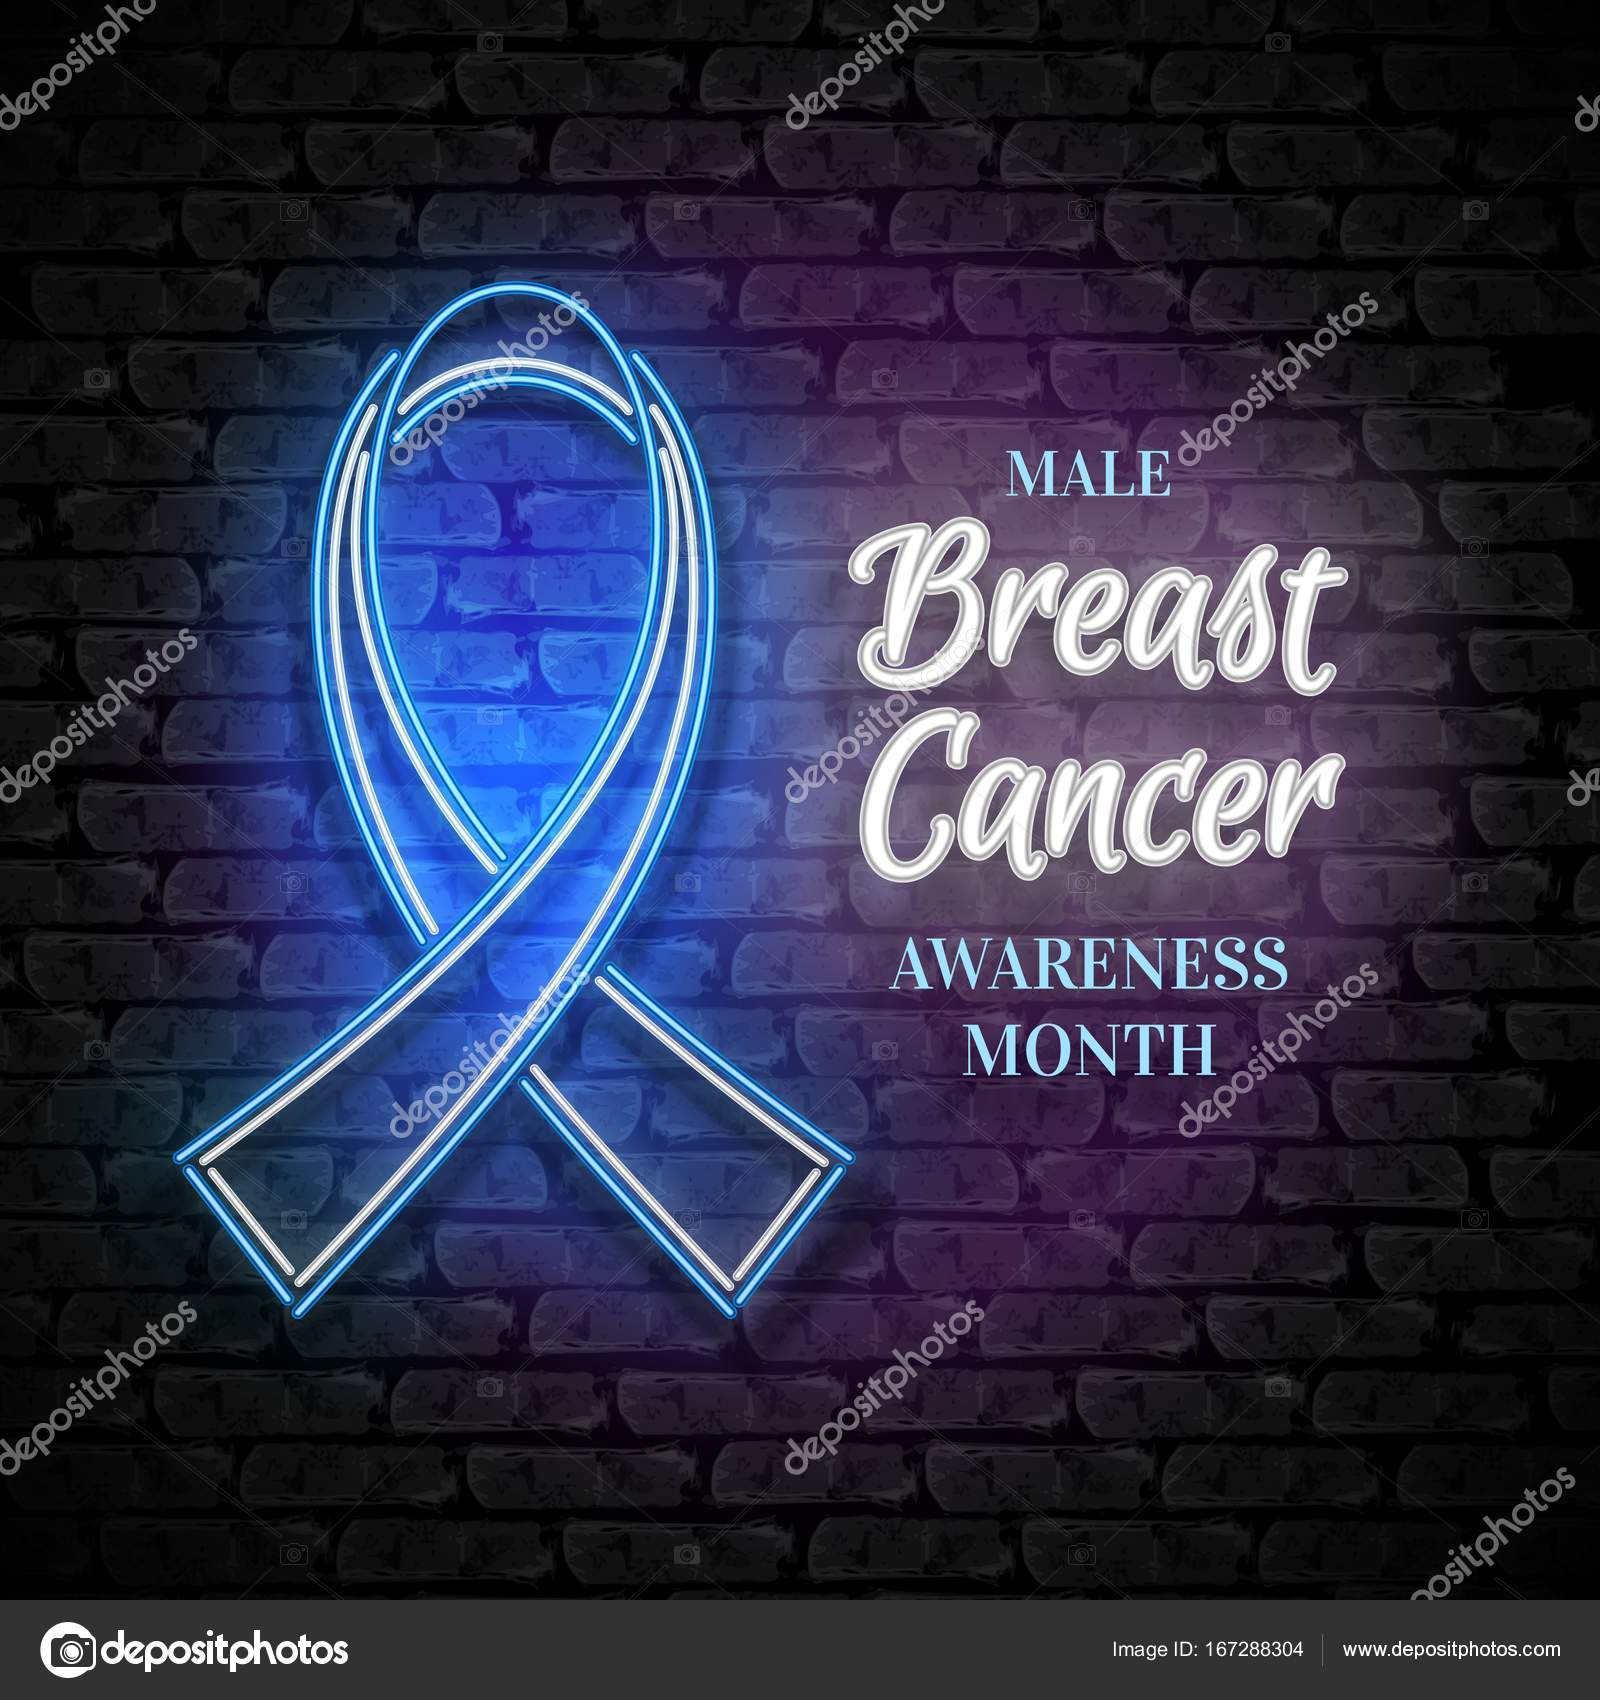 Male breast cancer awareness month emblem blue ribbon symbol male breast cancer awareness month emblem blue ribbon symbol stock vector biocorpaavc Choice Image